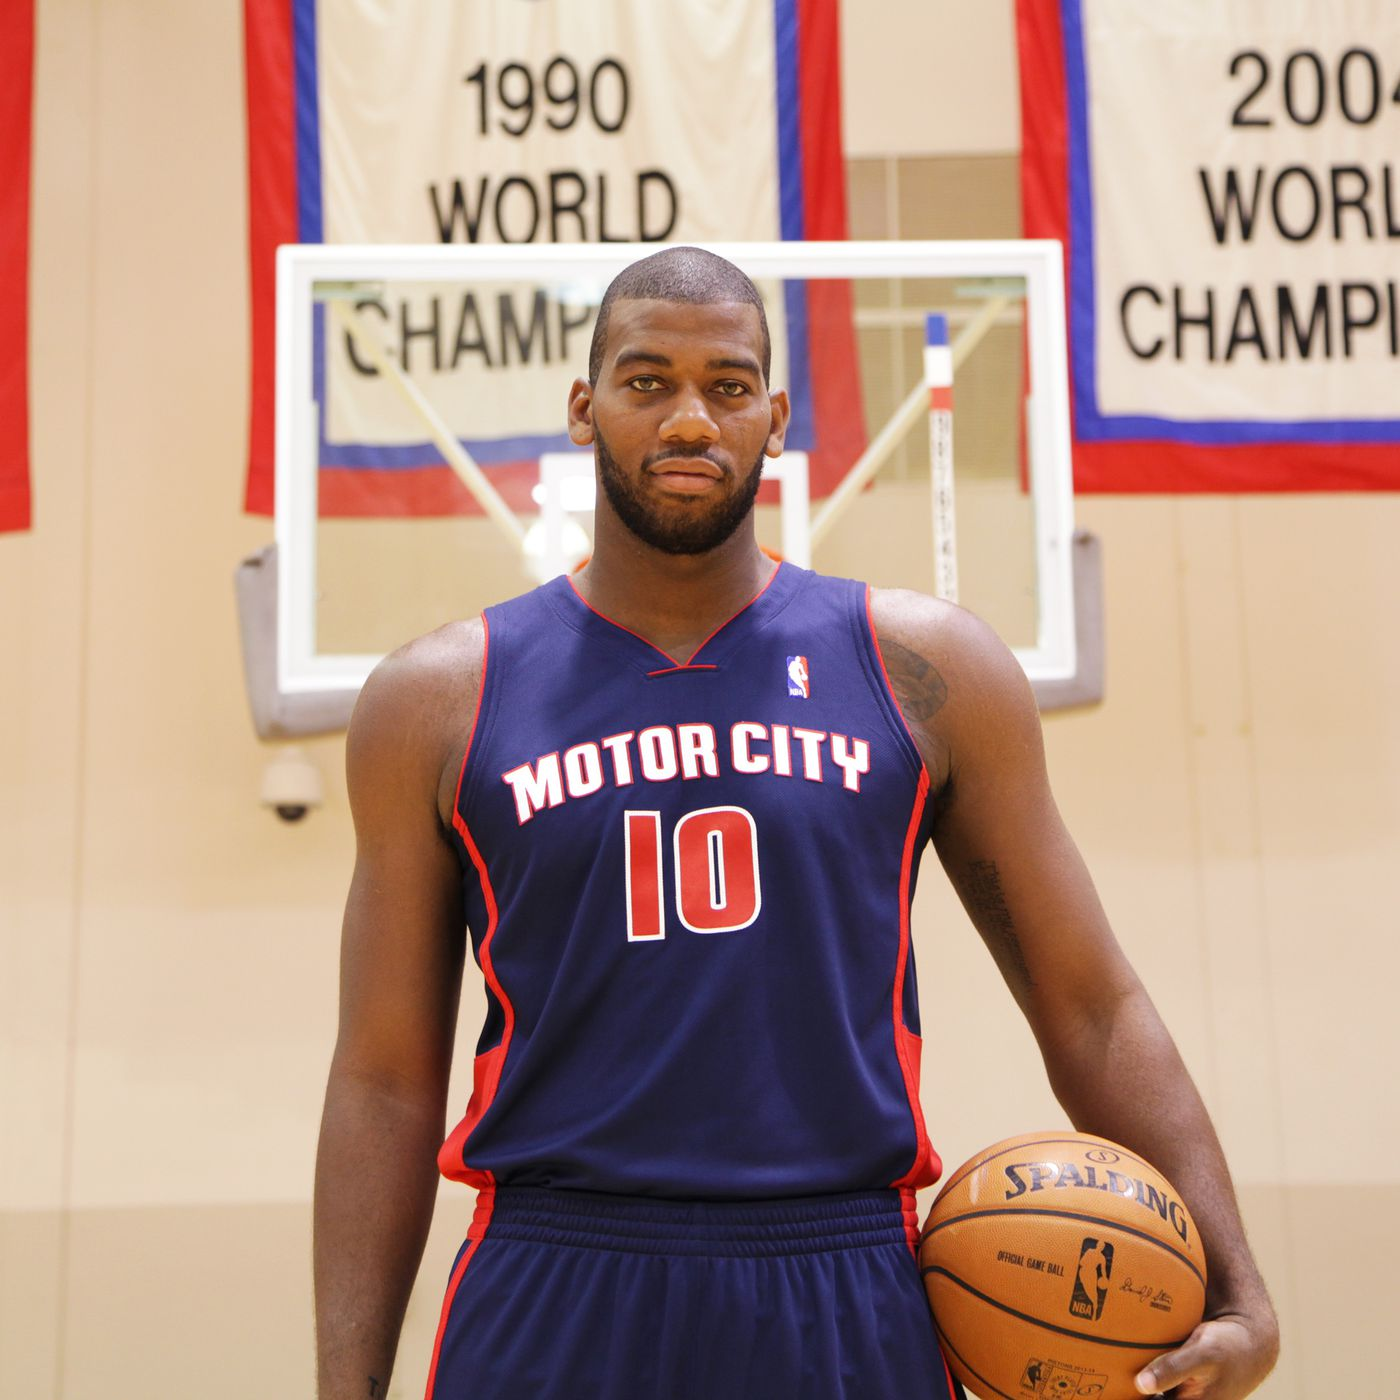 huge selection of 60535 319ff Detroit Pistons reveal 'Motor City' alternate jerseys ...